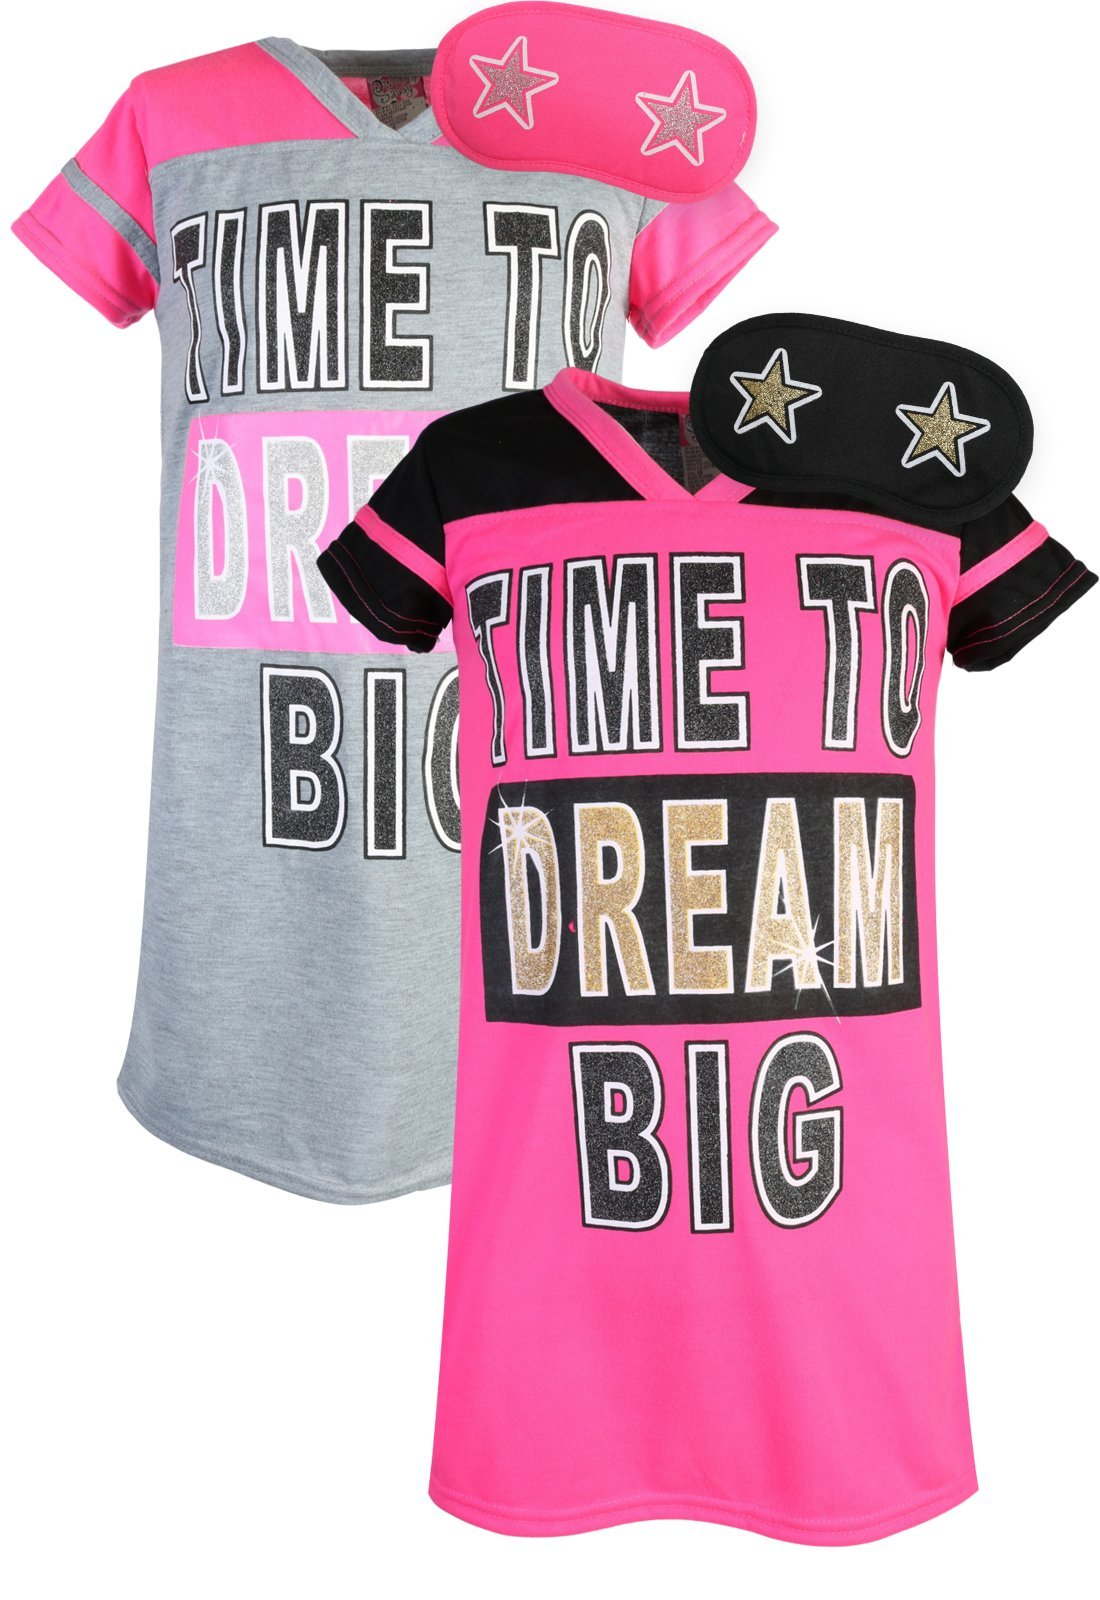 Sweet & Sassy Girls Short Sleeve Nightgown Pajama with Eye Mask (2 Pack) Dream Big, Size 10'